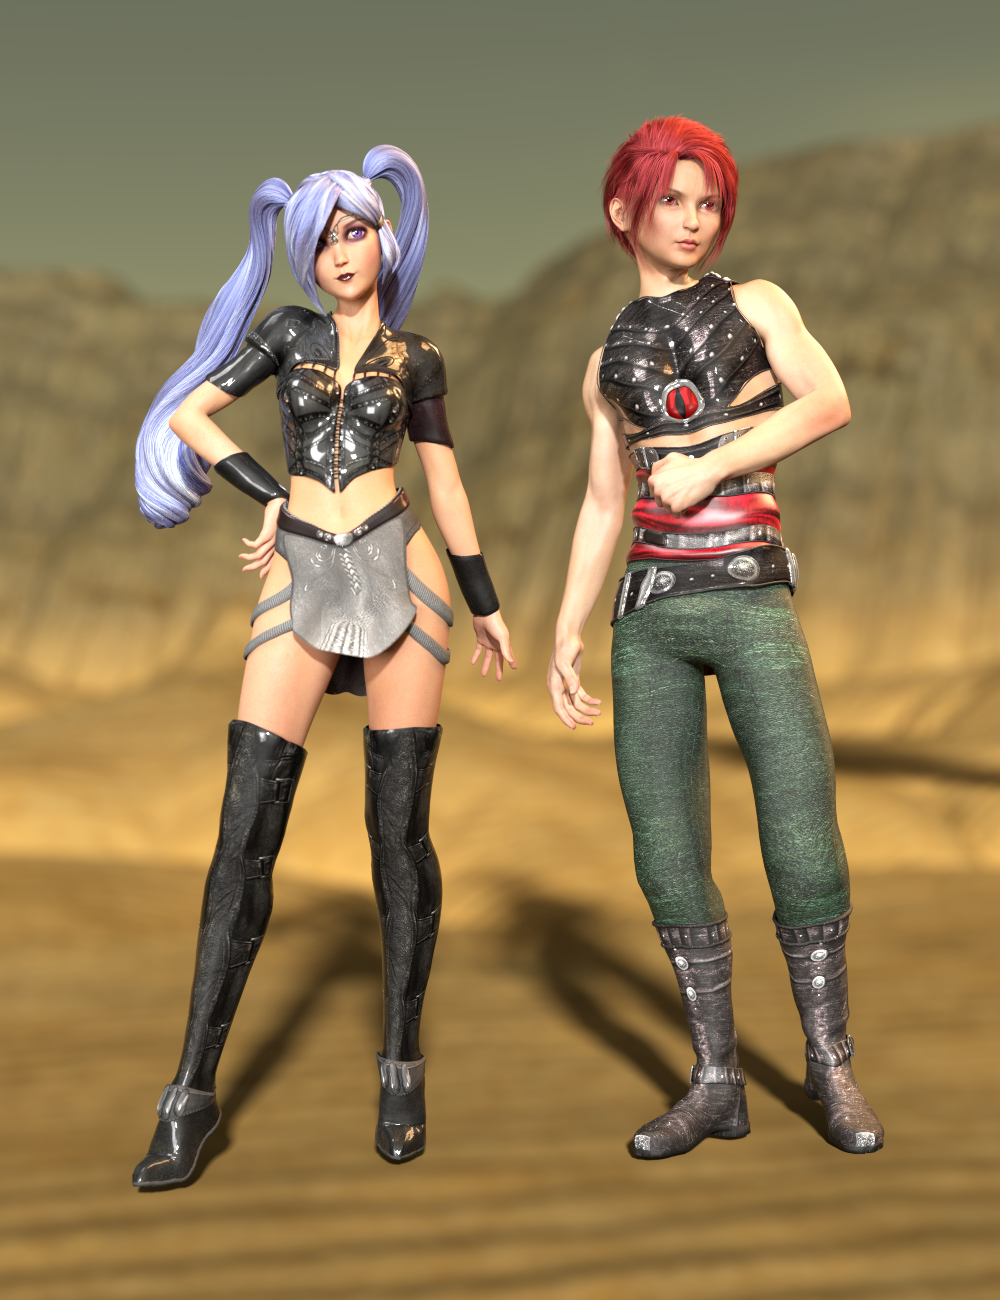 SY Aiko 3 and Hiro 3 Clones for Genesis 8 by: Sickleyield, 3D Models by Daz 3D